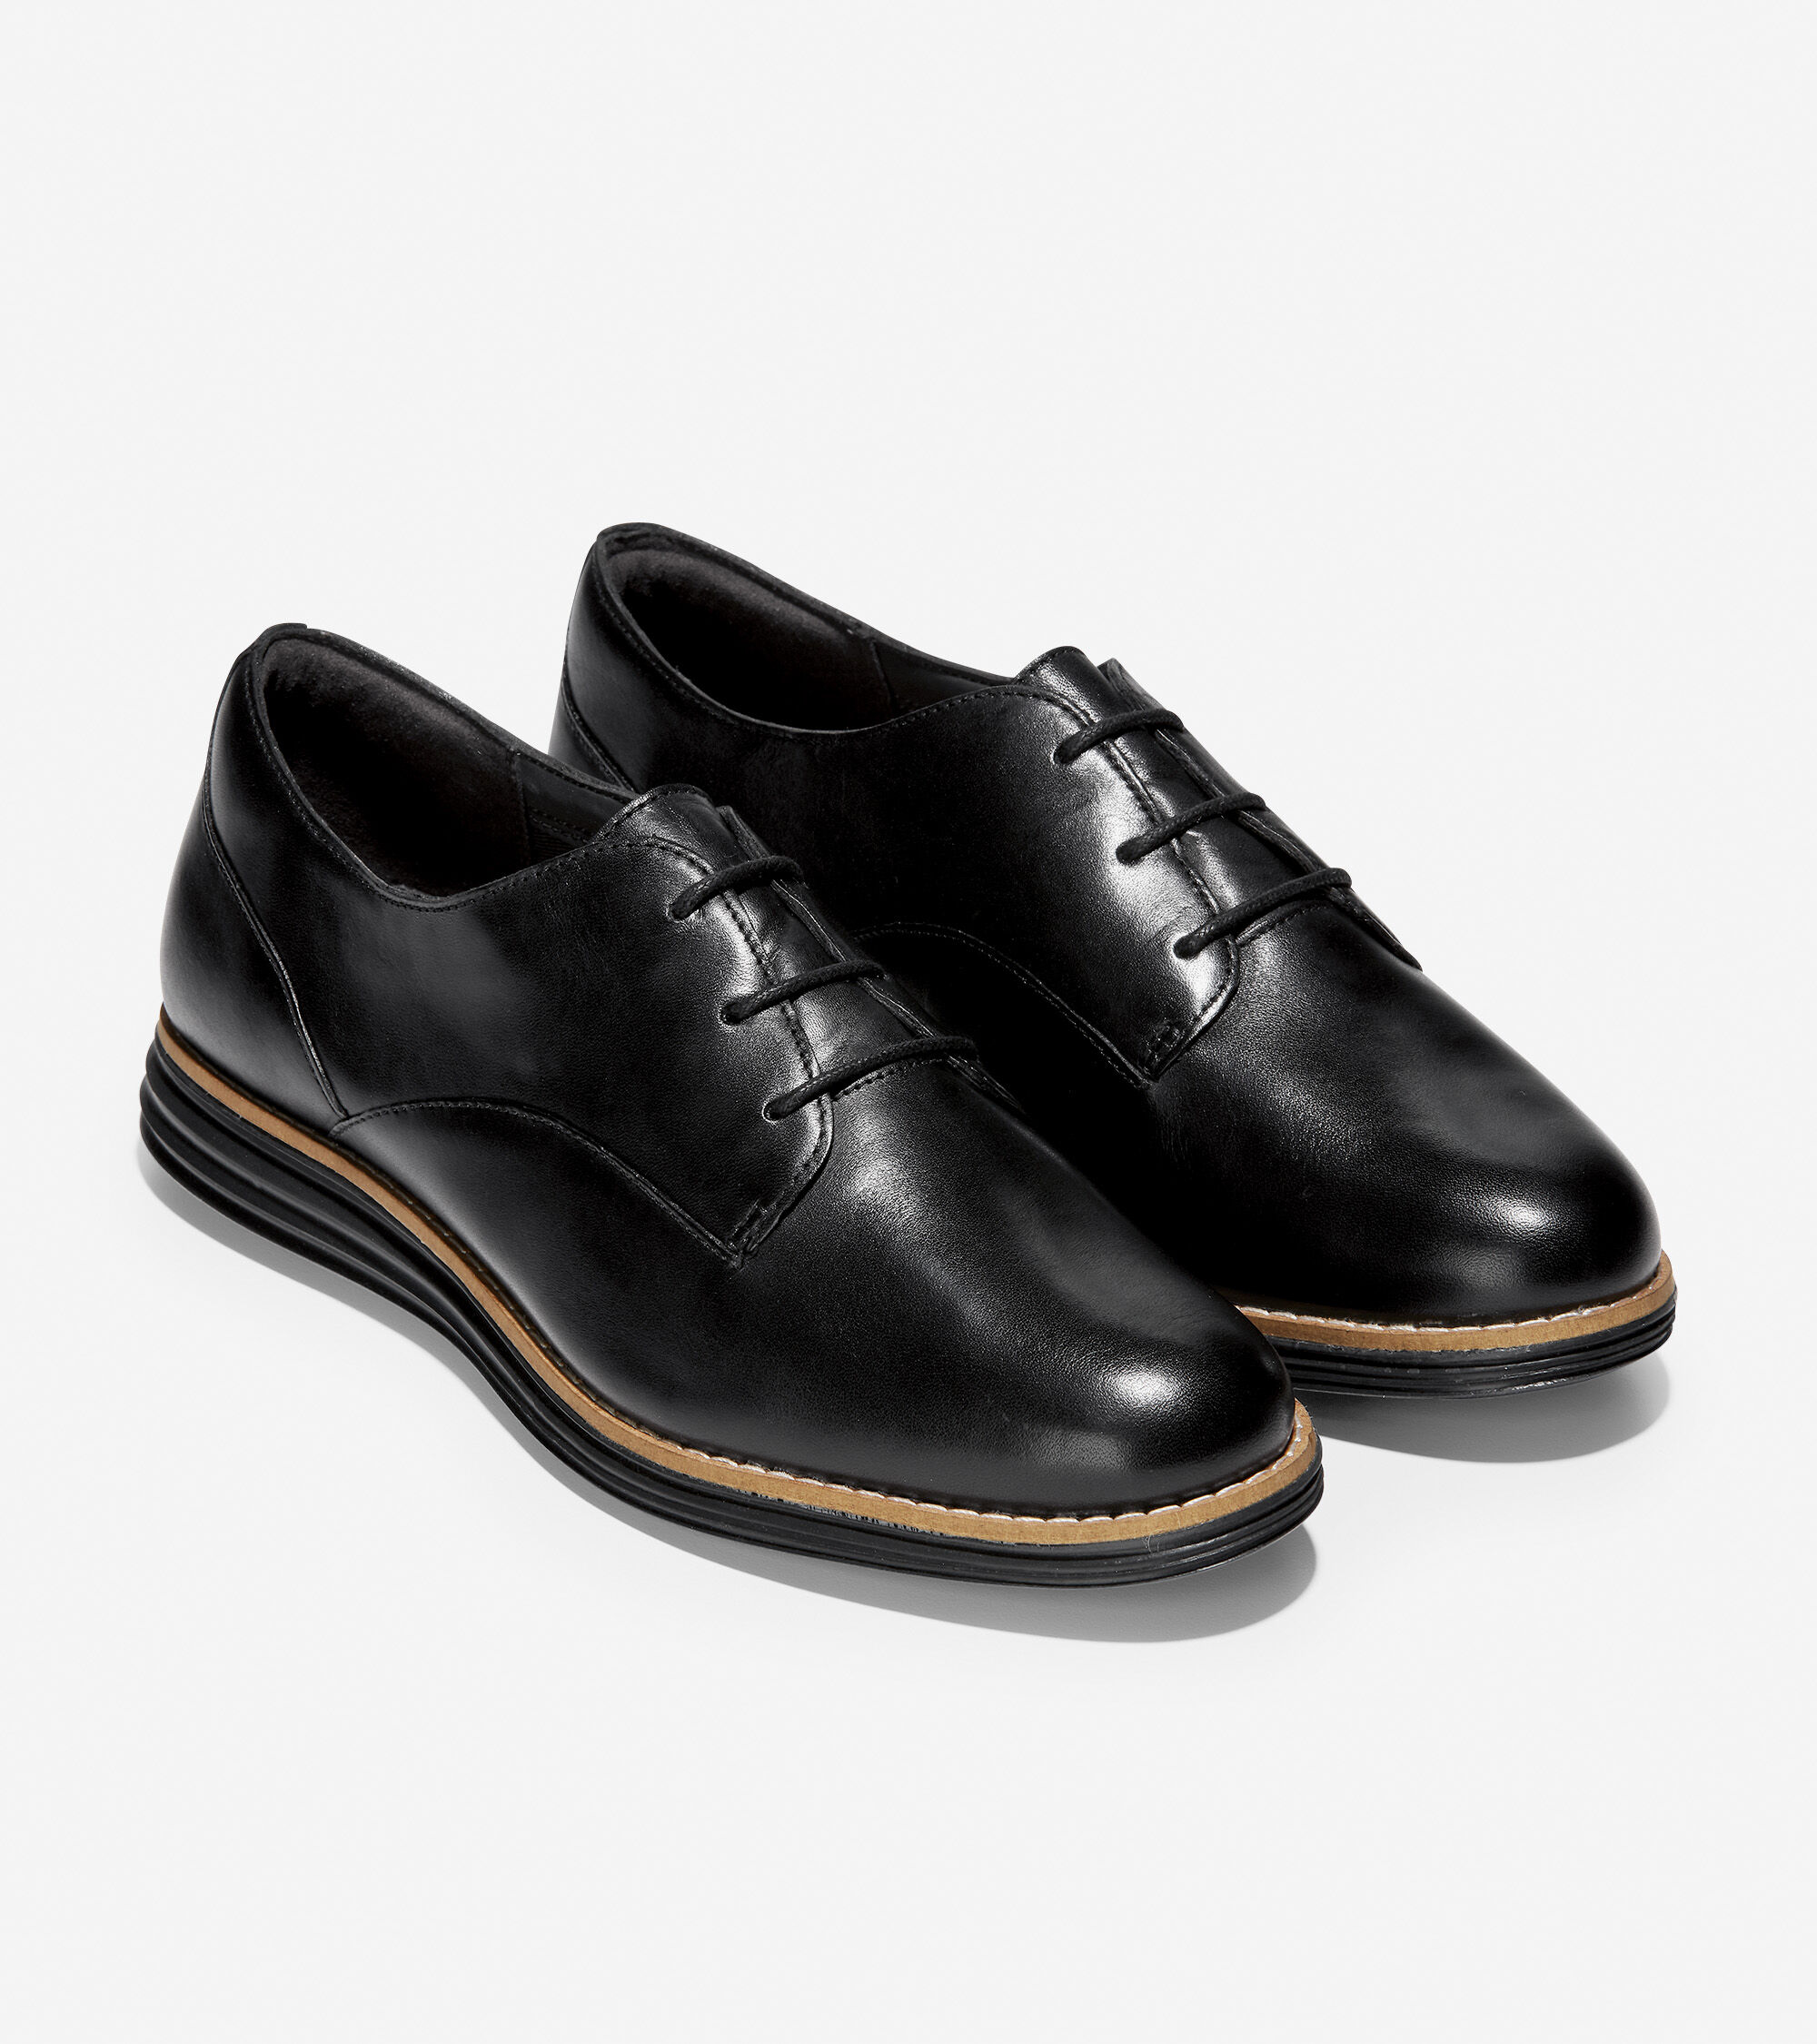 Plain Oxford in Black Leather